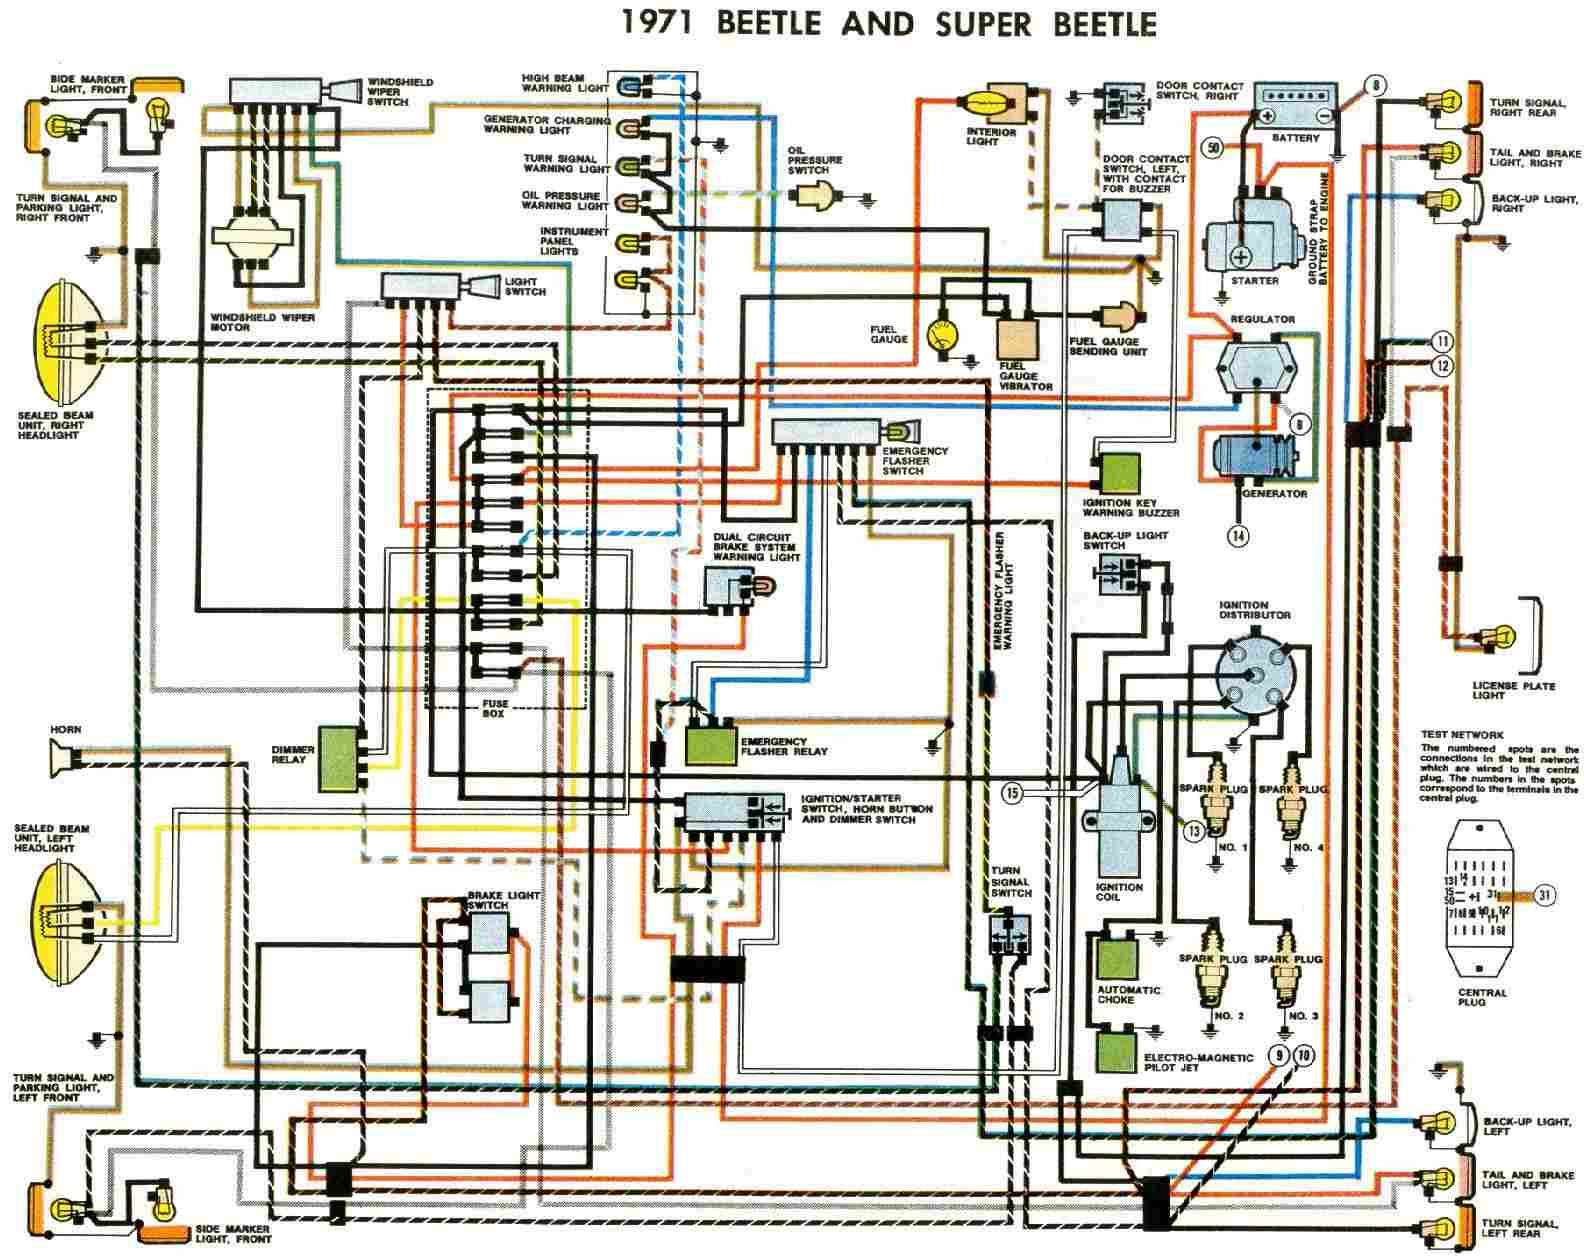 Wiring Diagram Auto Rear Mirror Ford F150 Library 1968 Pickup Free 1971 Vw Beetle And Super Truck Fuse Box